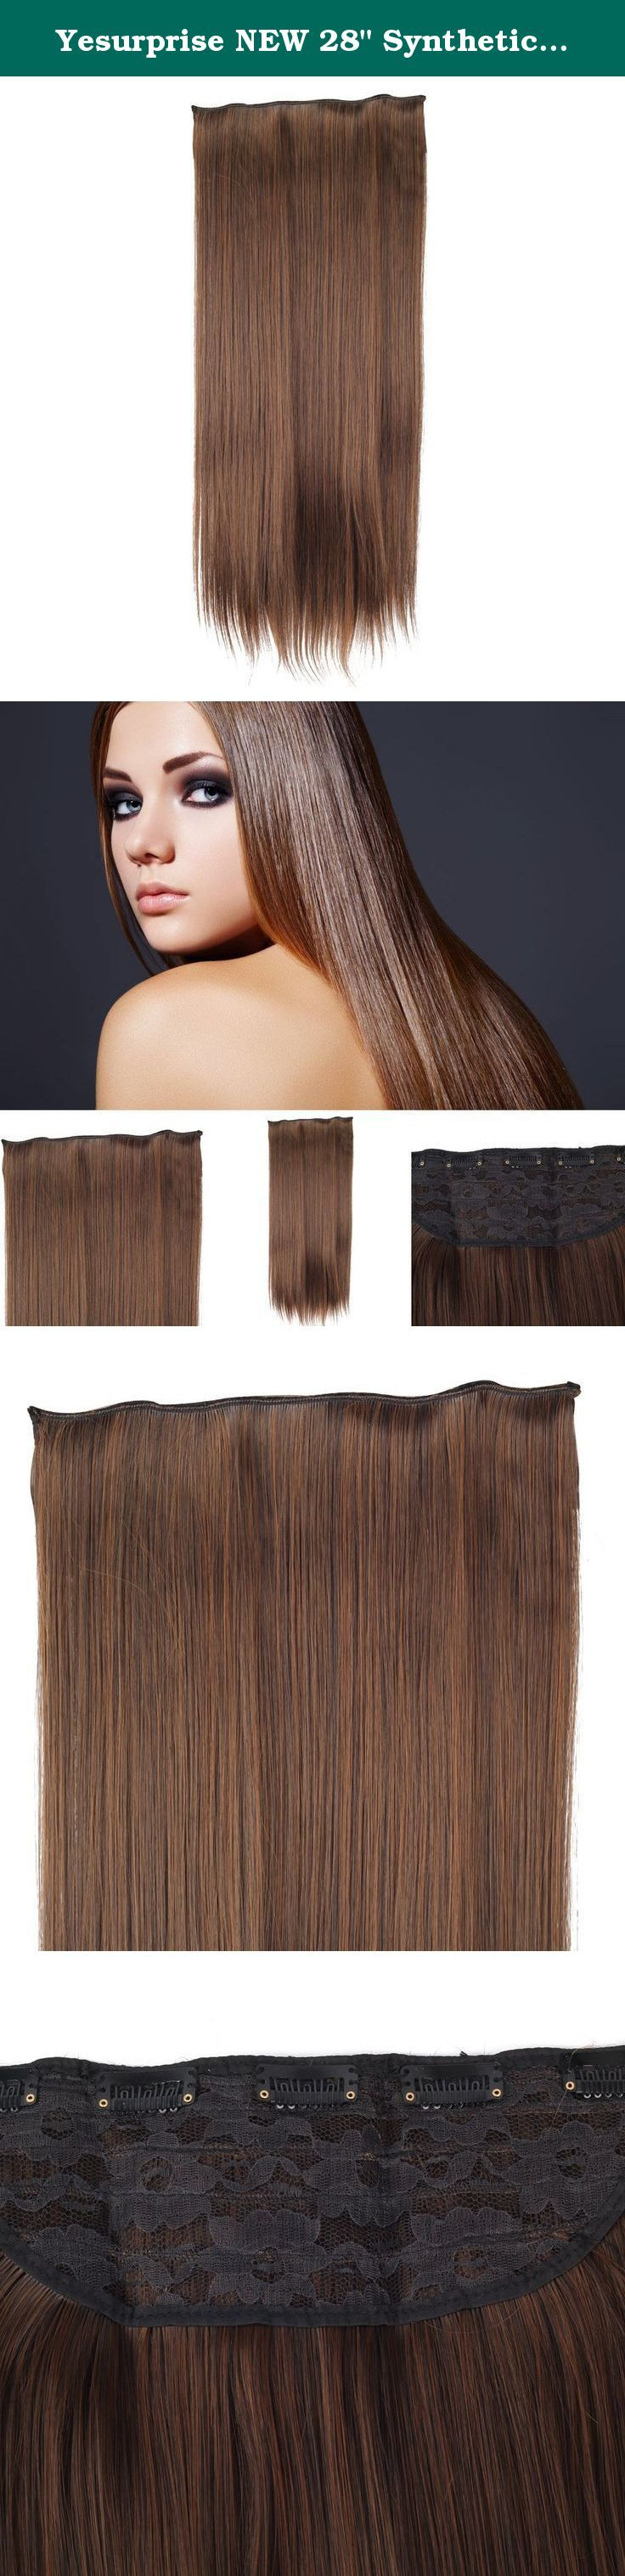 """Yesurprise NEW 28"""" Synthetic 3/4 Full Head Clip in Long Straight Human Made Hair Extensions Charming Sale Trendy Gift #2/30. Features : Hair Style :Straight Long £º28 inches Approx. Material: High quality synthetic Weight : 150g Approx. These extensions are very durable and DIY-able. Without causing damage to your own hair. Pressure Sensitive Clip :Easily and securely clips Please note that different monitors display colors differently. How to care the hair: 1.use a mild shampoo ,rinse…"""